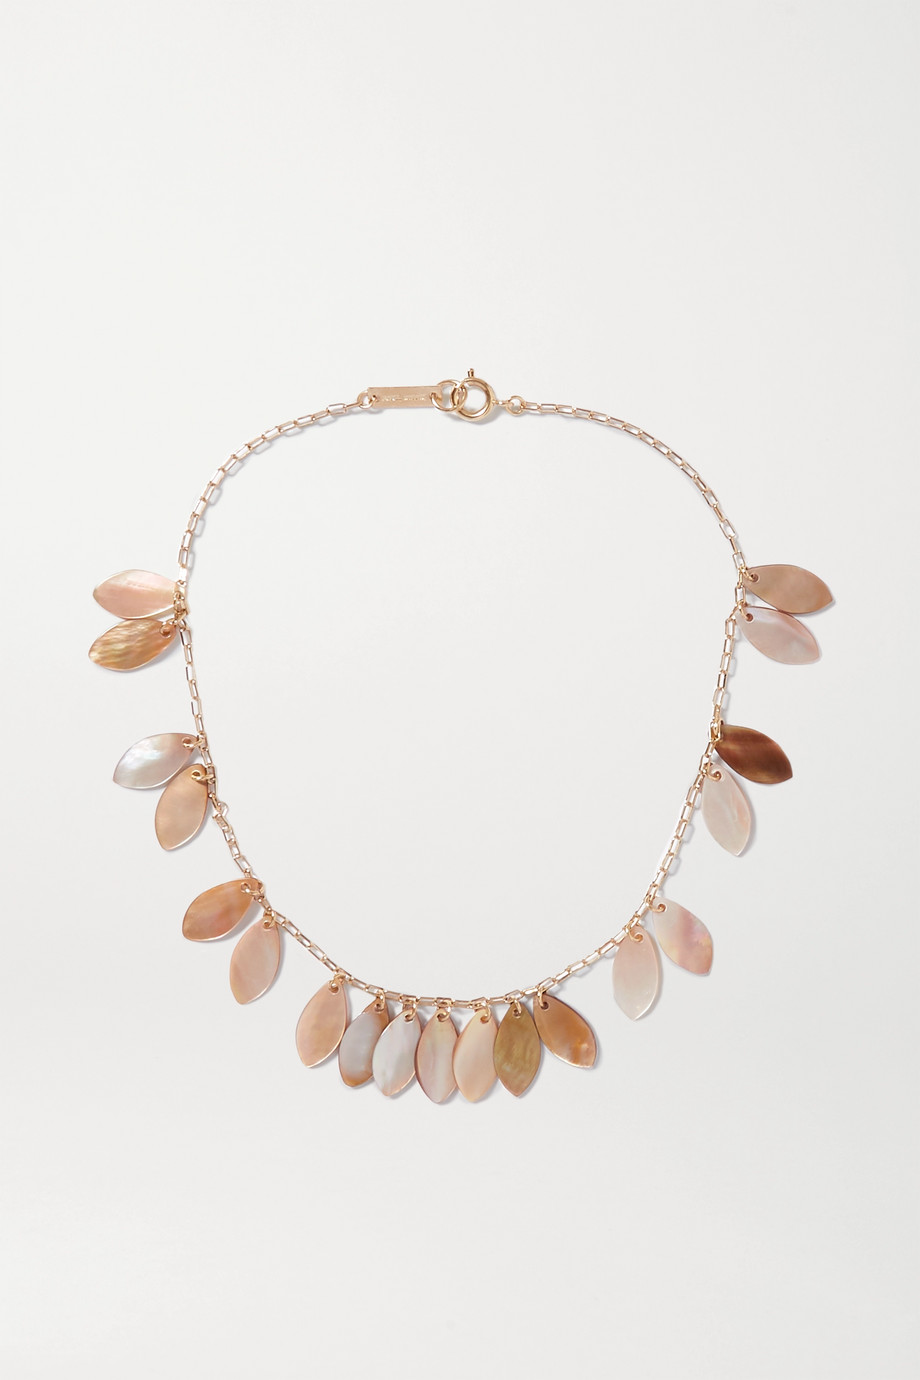 Isabel Marant Ali gold-tone shell necklace